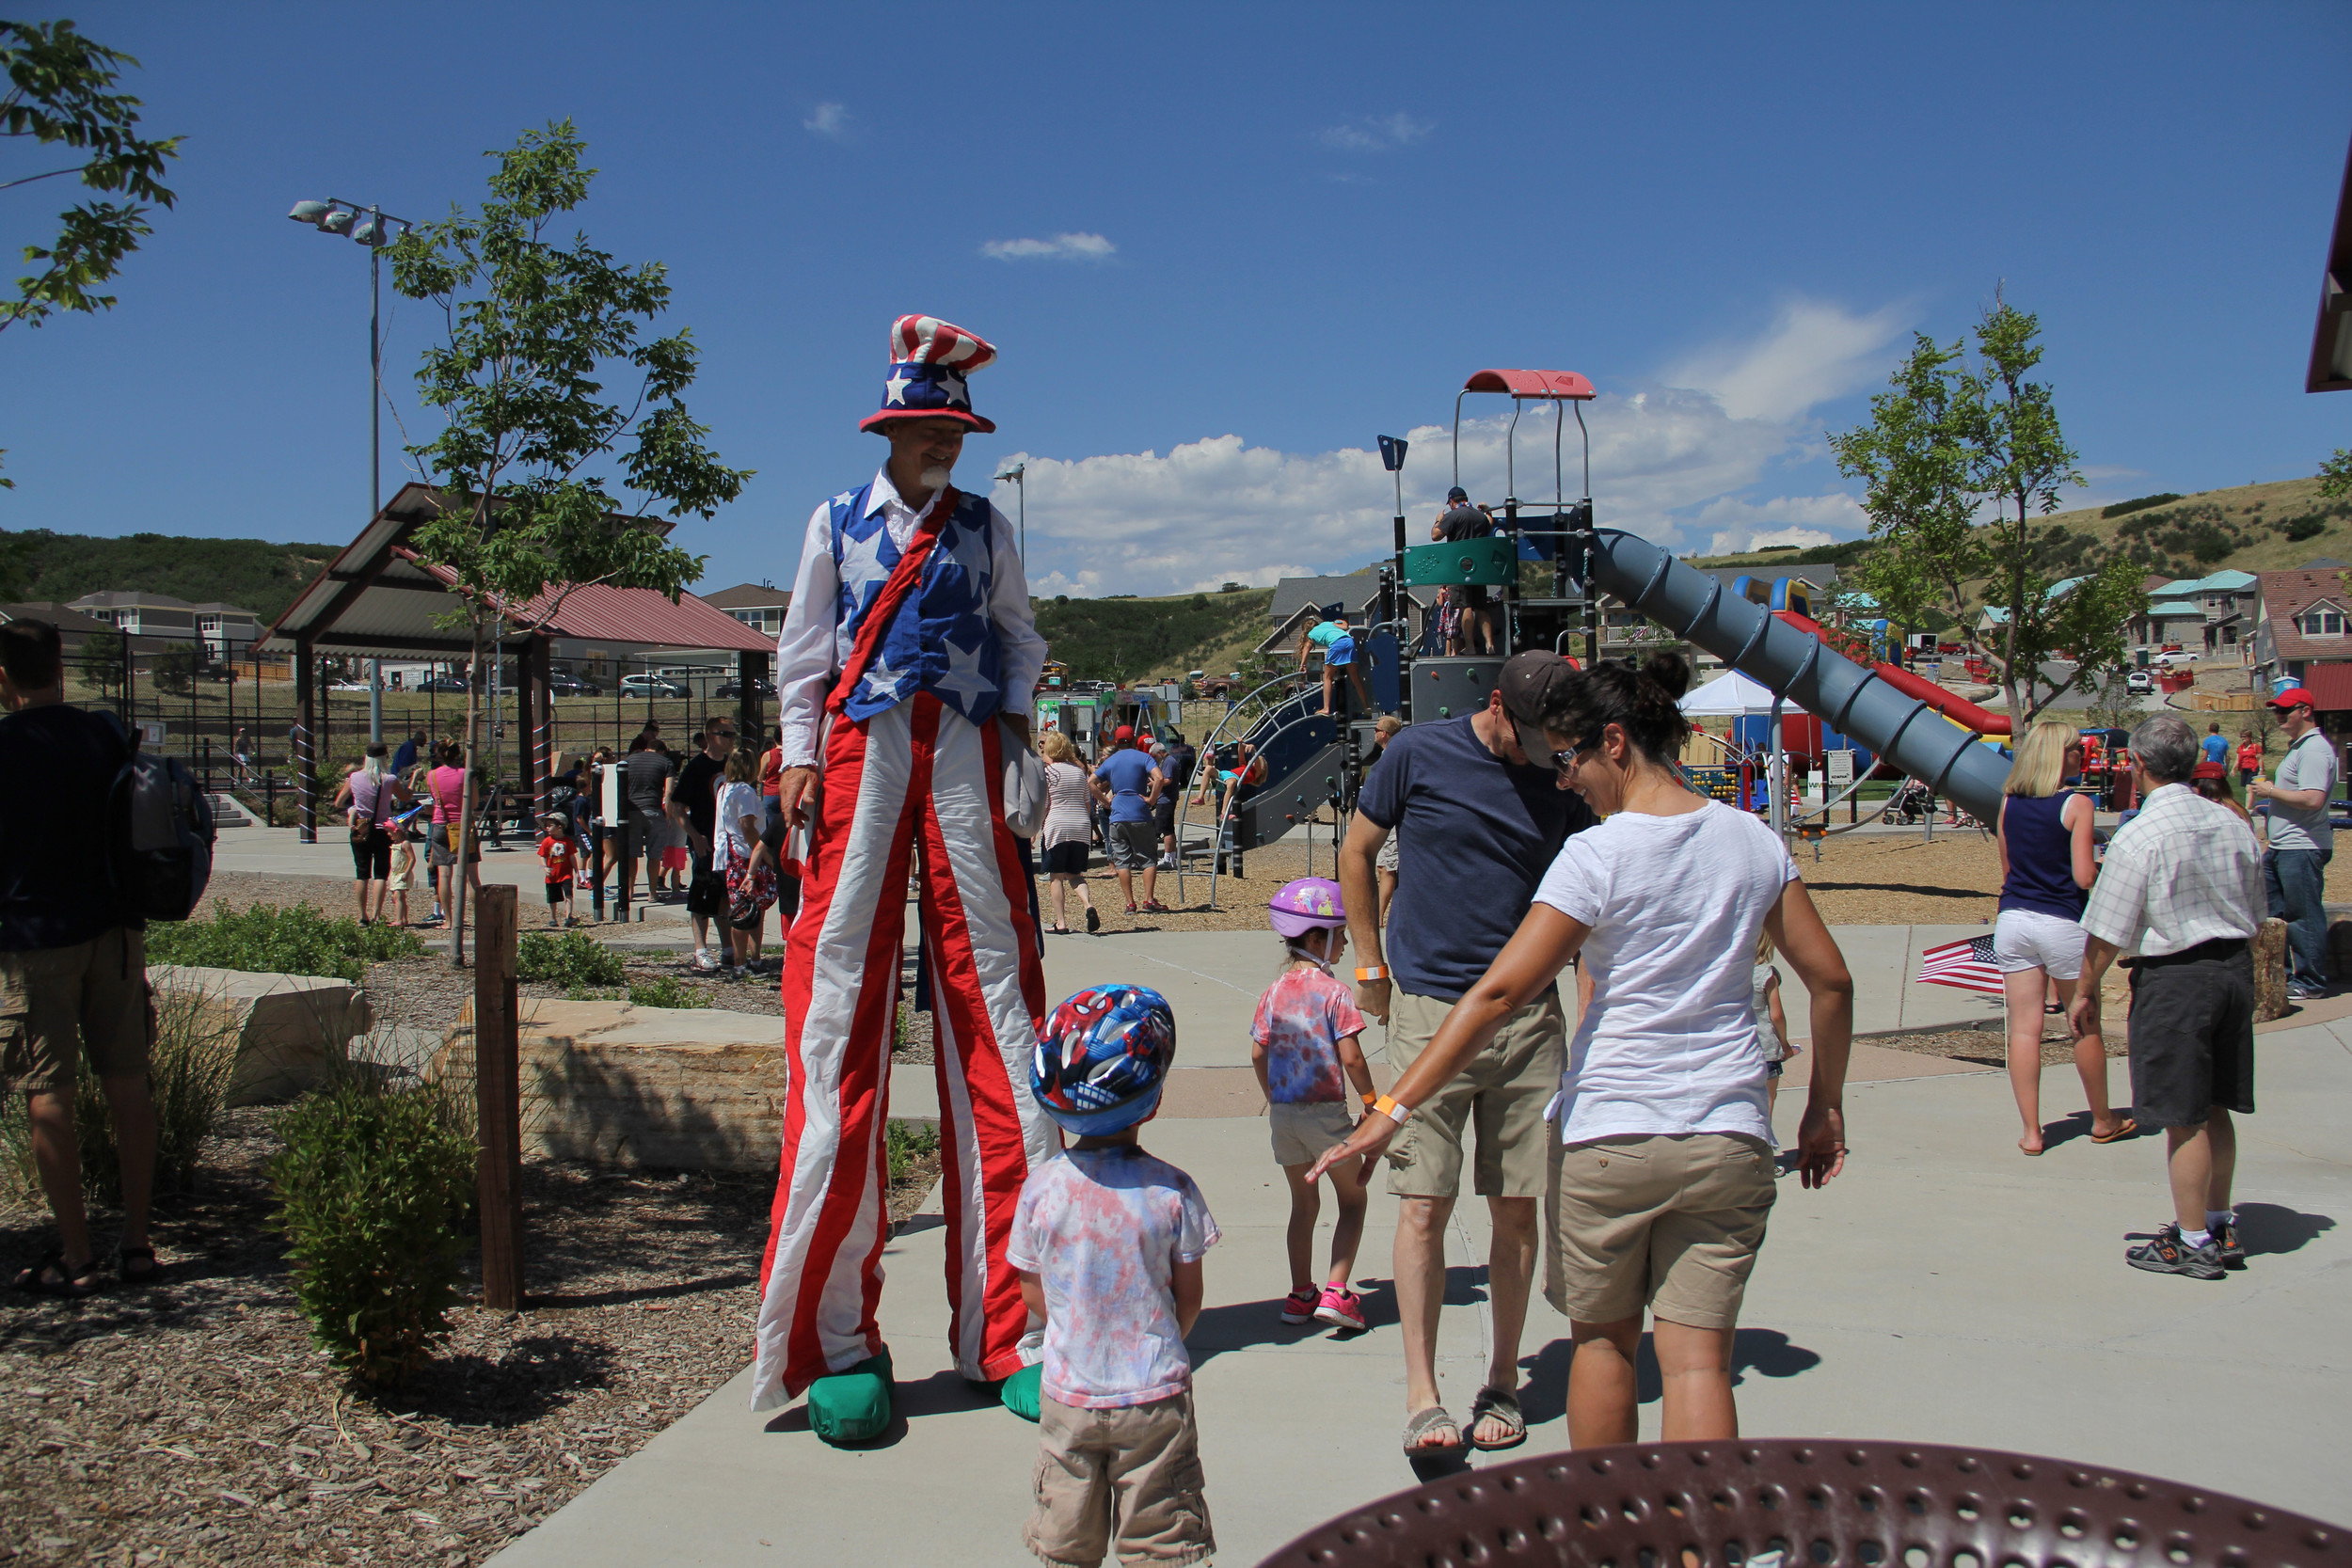 Uncle Sam greets visitors to Bison Park as Castle Rock residents get together to celebrate the Fourth of July.